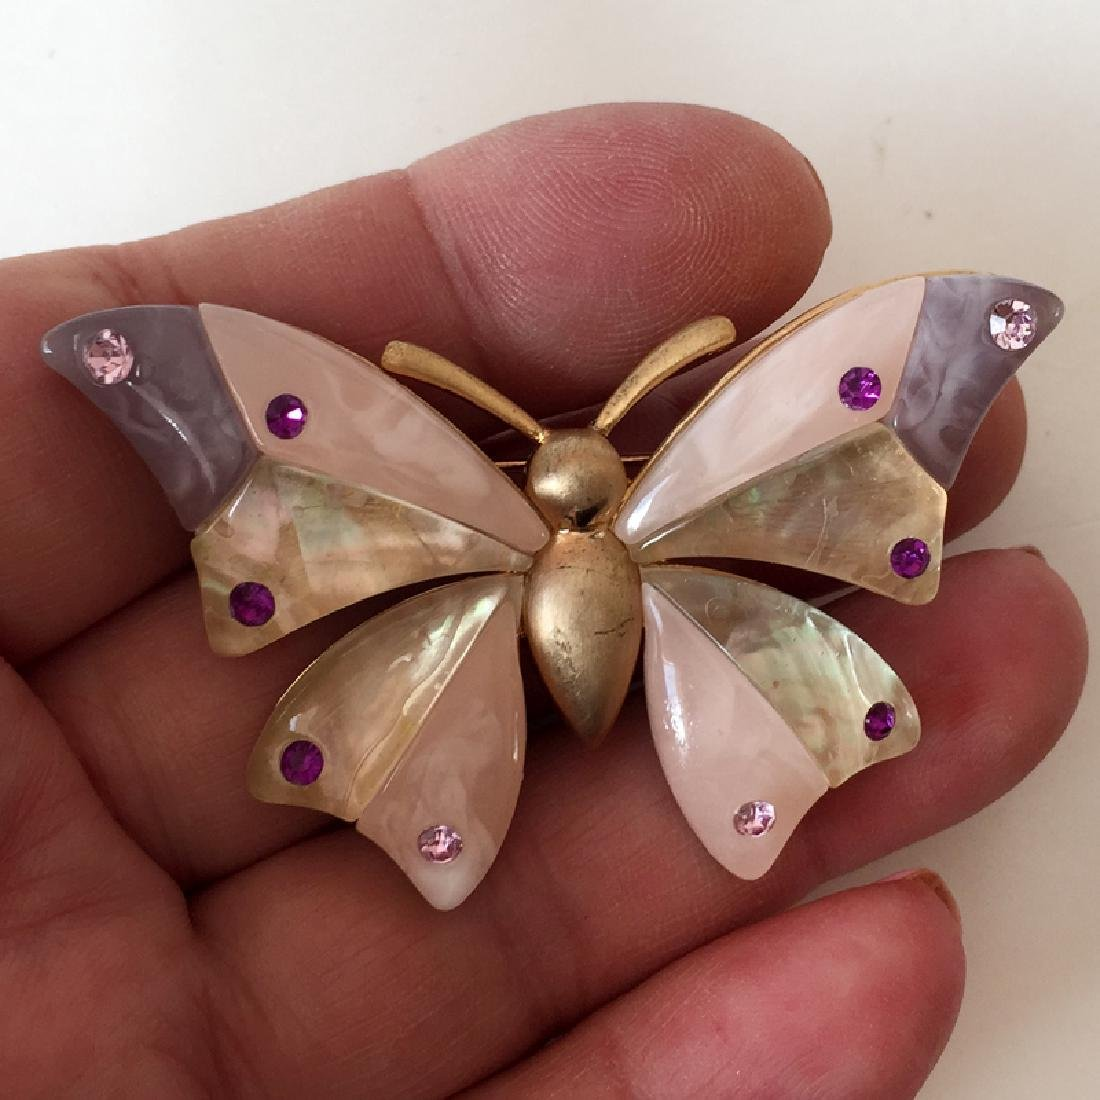 LIZ CLAIBORNE: Gold plated BUTTERFLY shaped brooch with